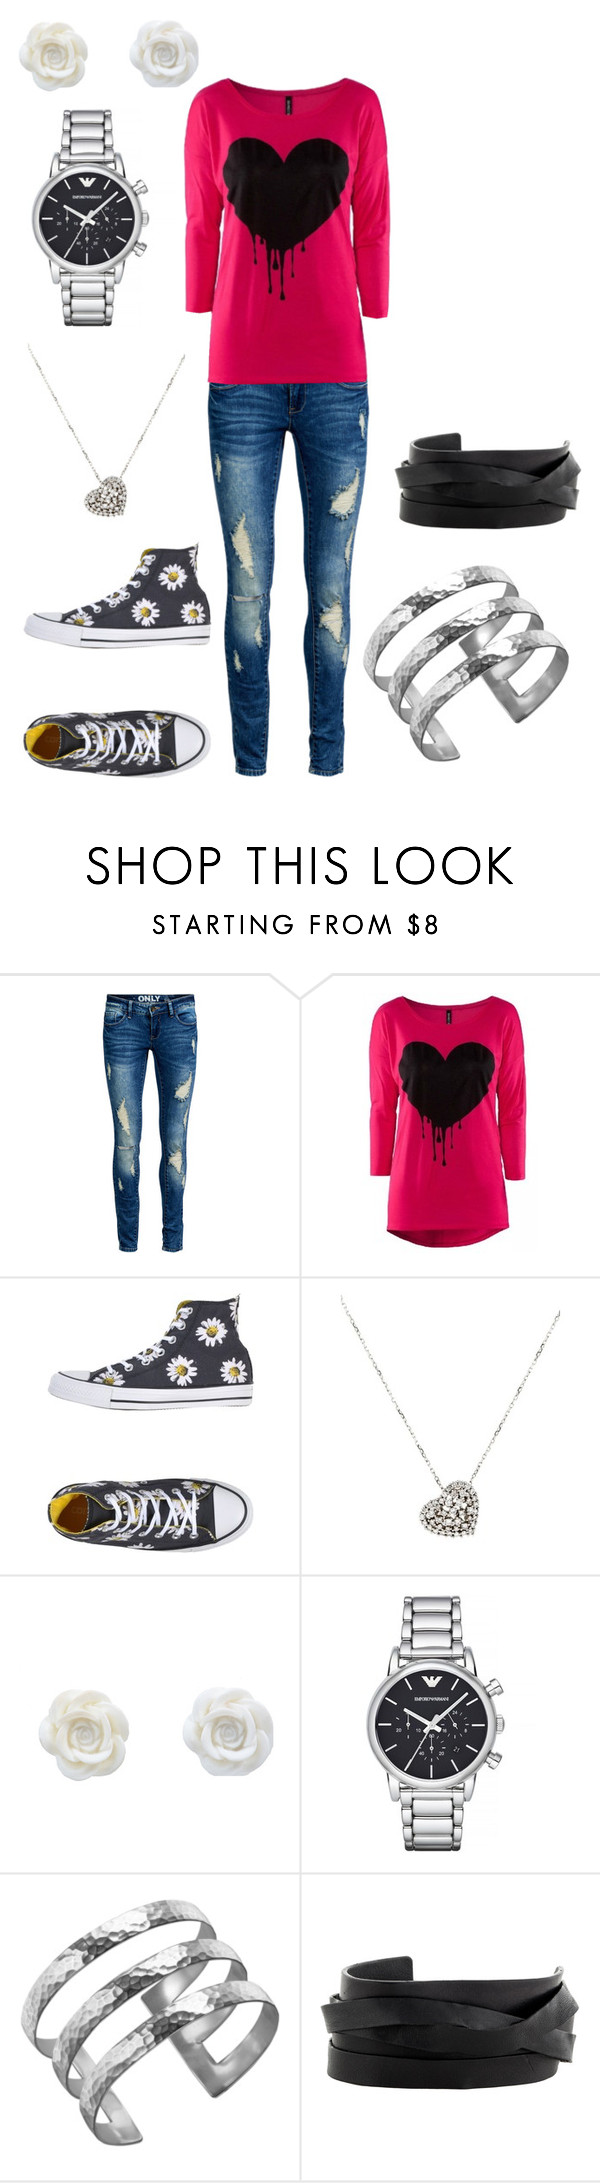 """Untitled #227"" by luna8nightshade ❤ liked on Polyvore featuring ONLY, Converse, Rina Limor, Emporio Armani, Dower & Hall, Gucci, women's clothing, women, female and woman"